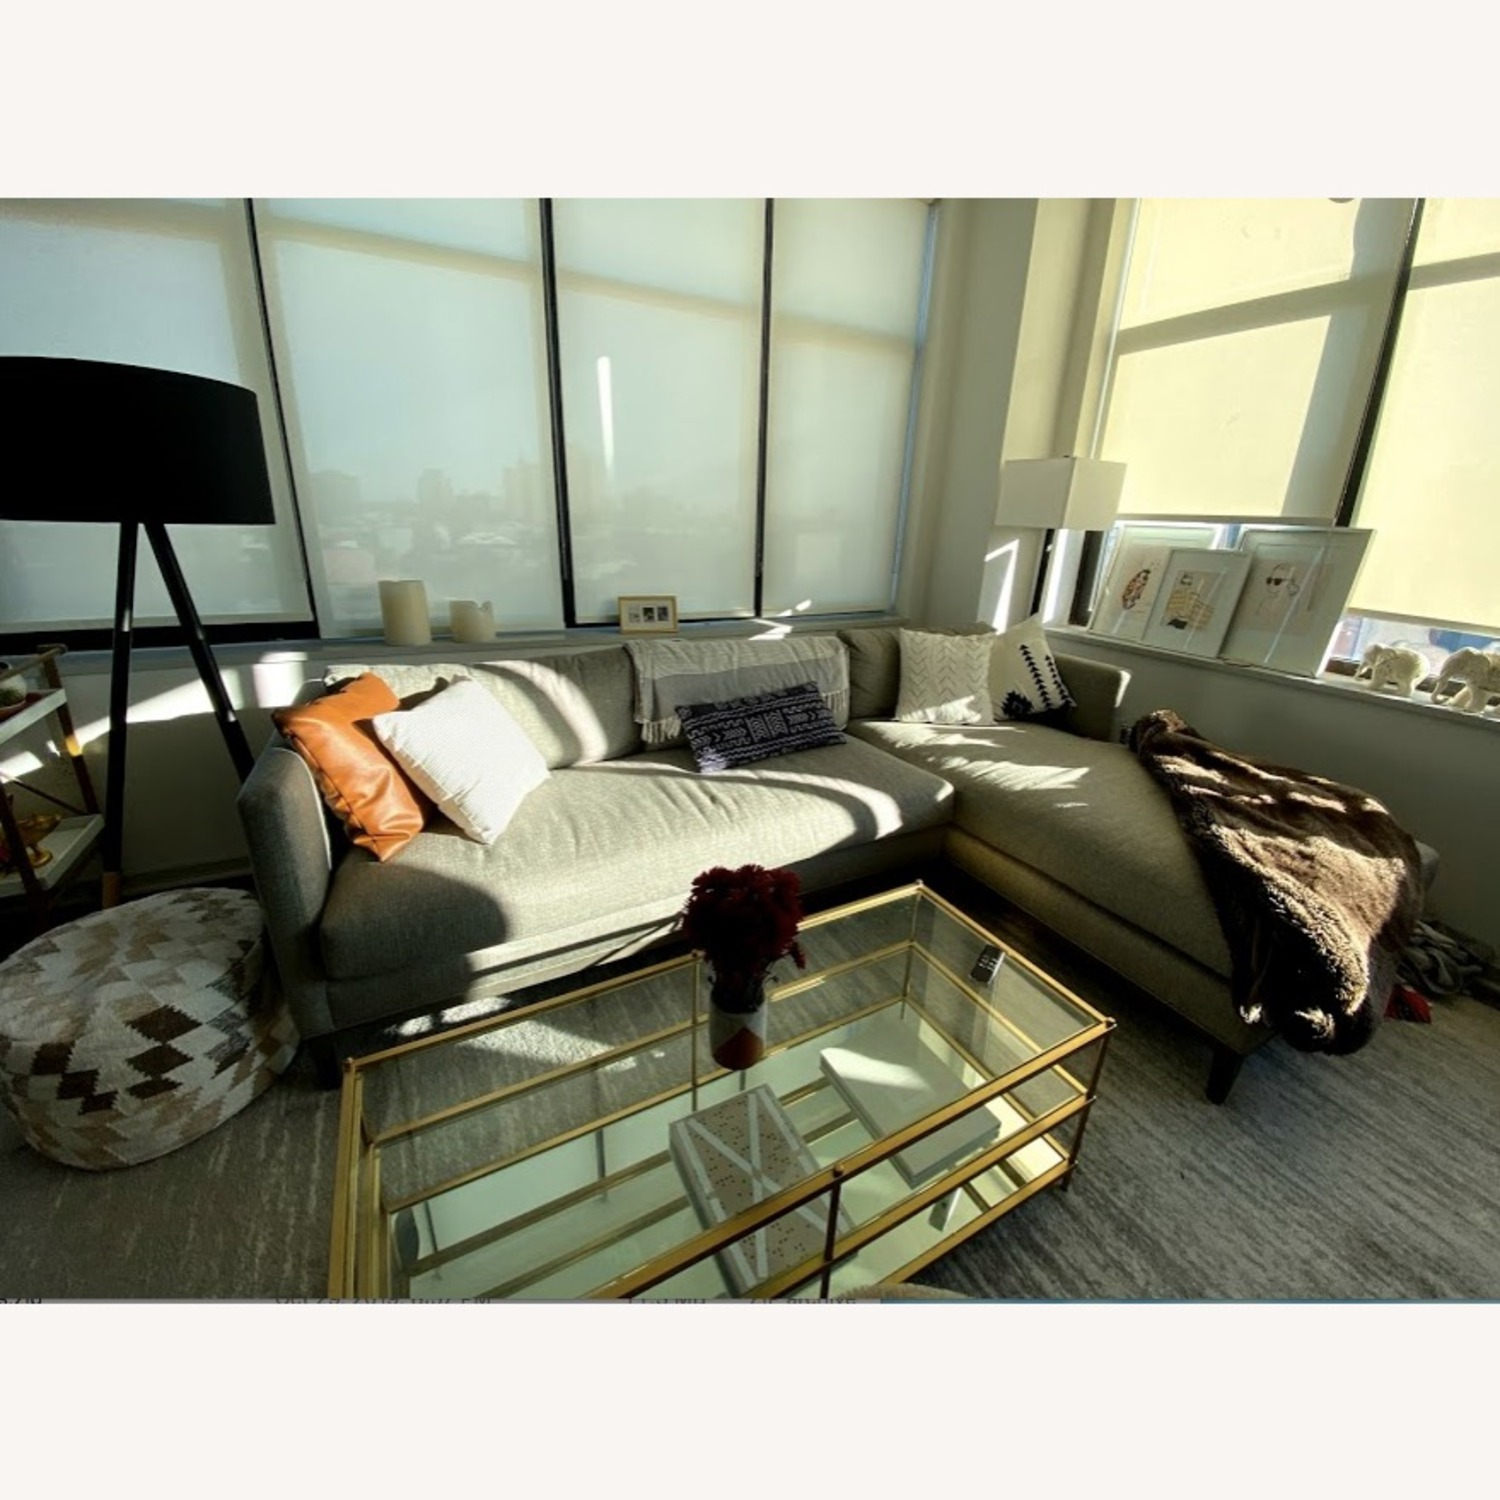 Safavieh Mid Century Modern Sectional w/Chaise - image-2